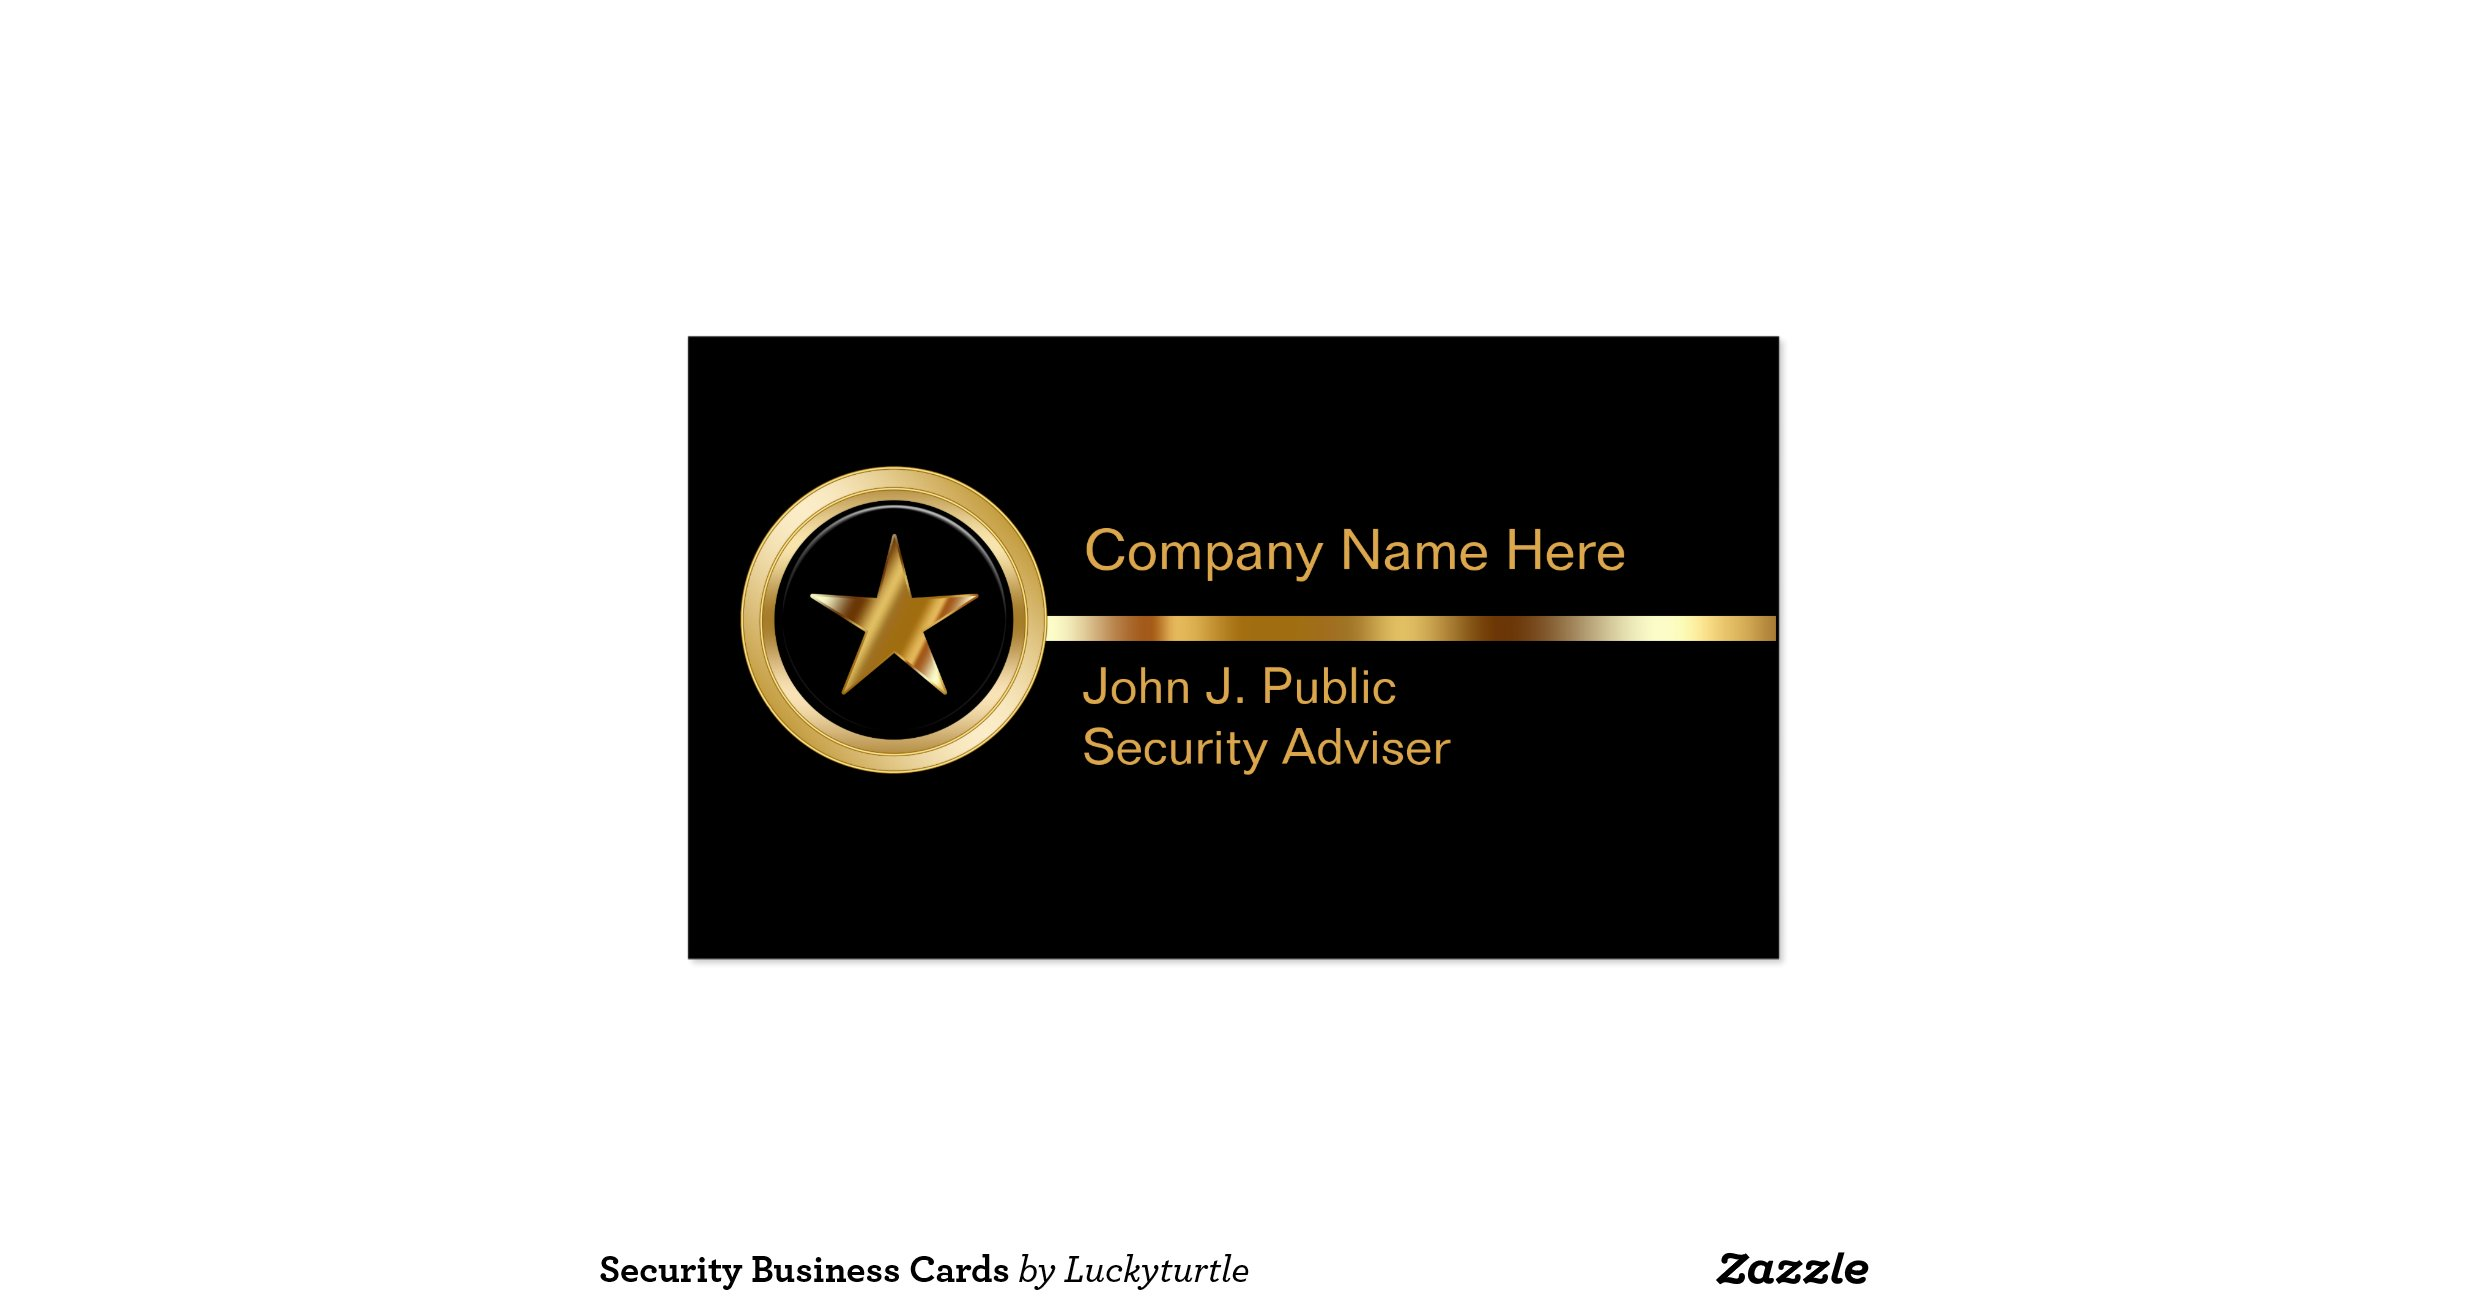 Security business cards rdd1efba6ff44449ea61db8c8584960d0 for Cctv business card